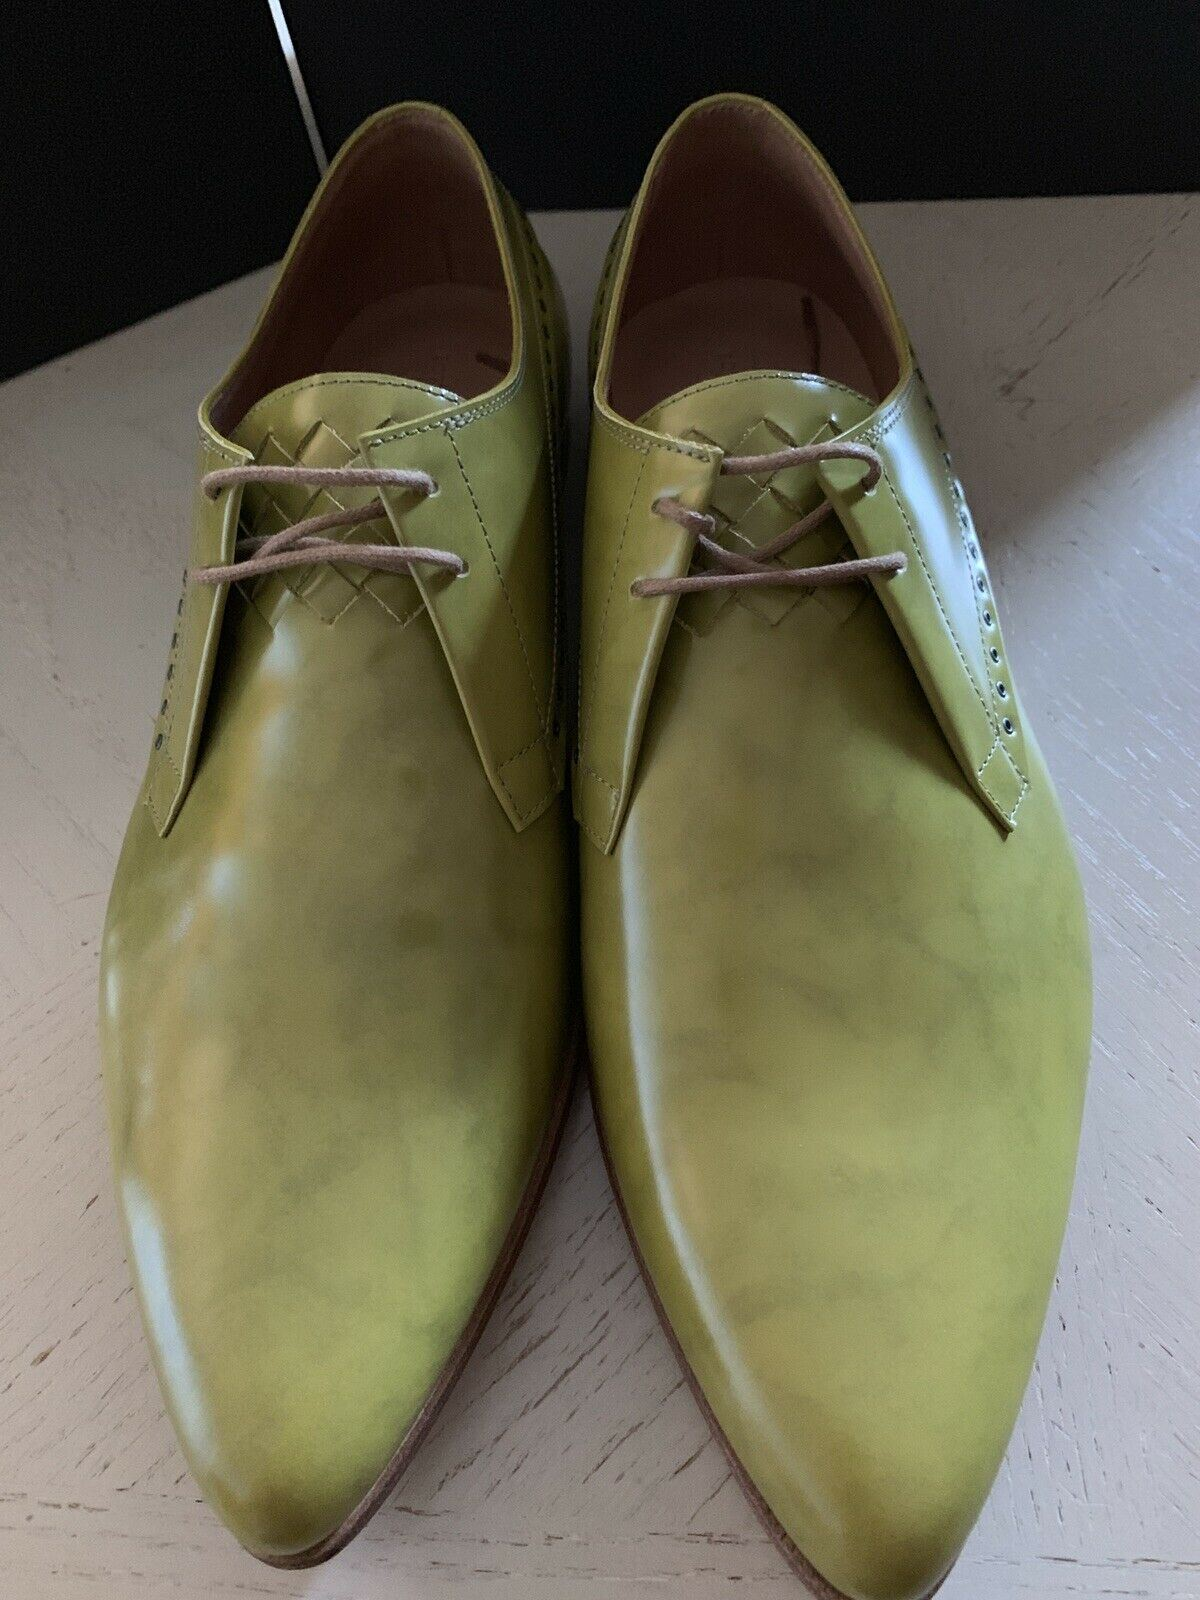 NIB $860 Bottega Veneta Mens Leather Shoes Color Chamomile 10.5 US ( 43.5 Eu )